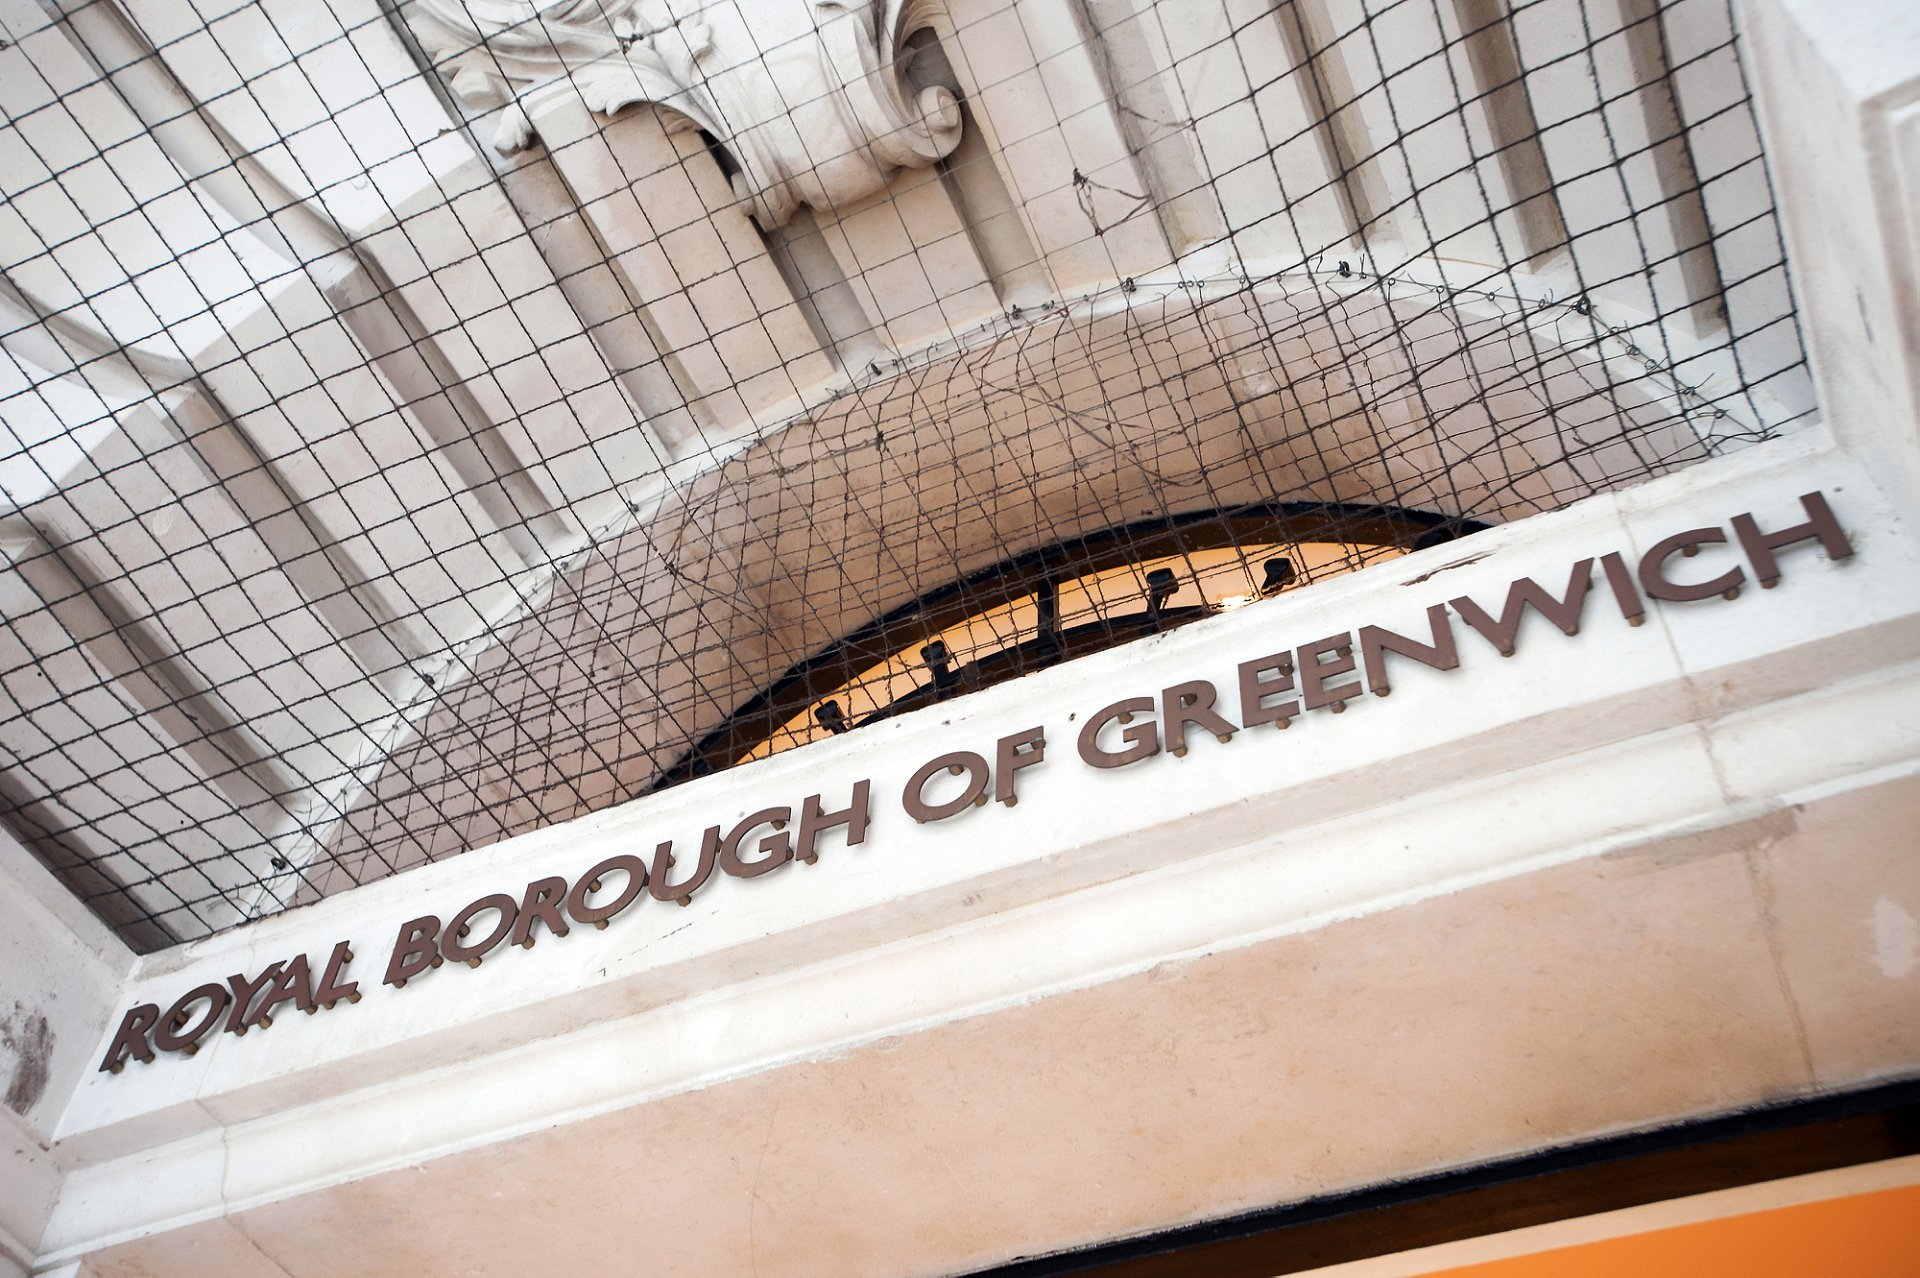 Royal Borough of Greenwich for weddings at Woolwich Town Hall